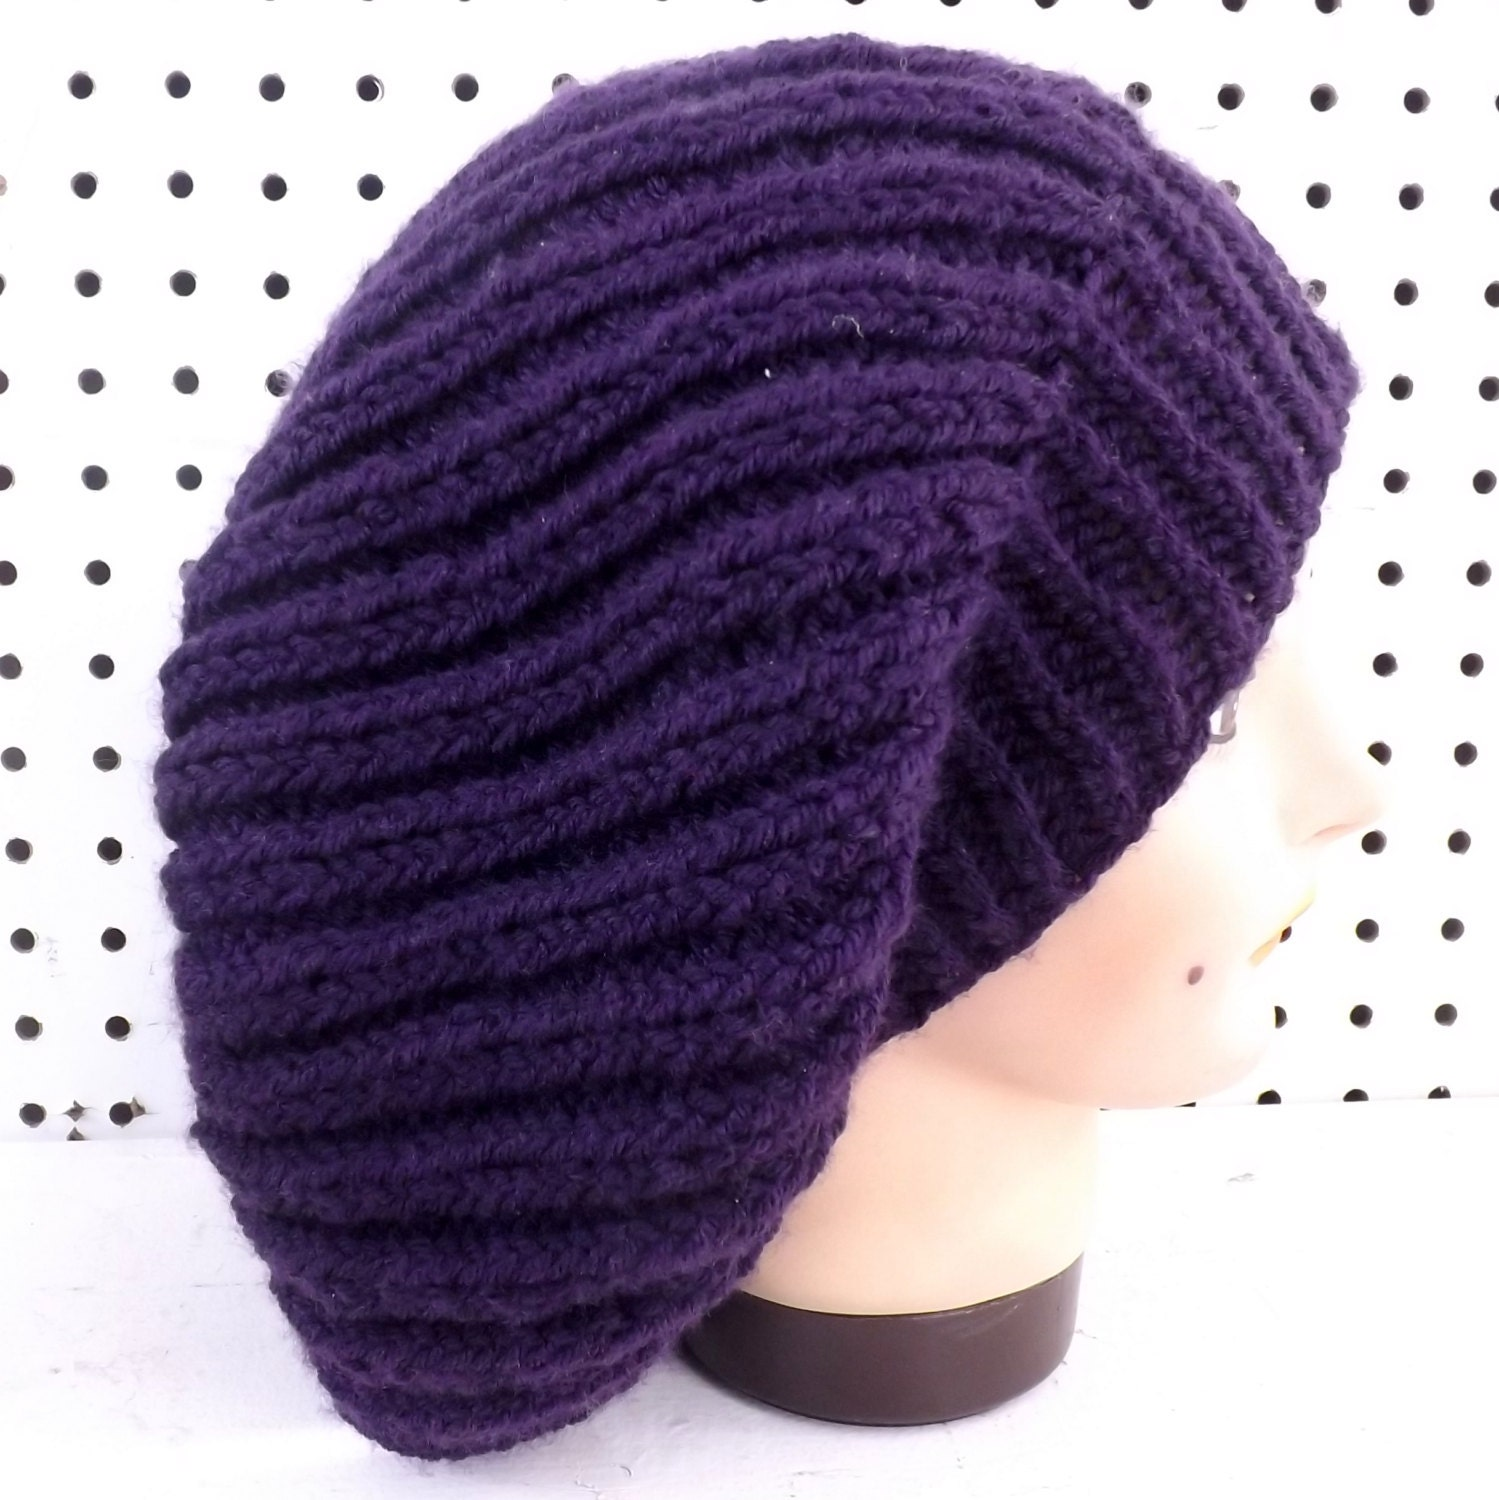 MARY Knit Ribbed Hat Pattern - Knit Beanie Hat Pattern - Knit Beanie Pattern ...